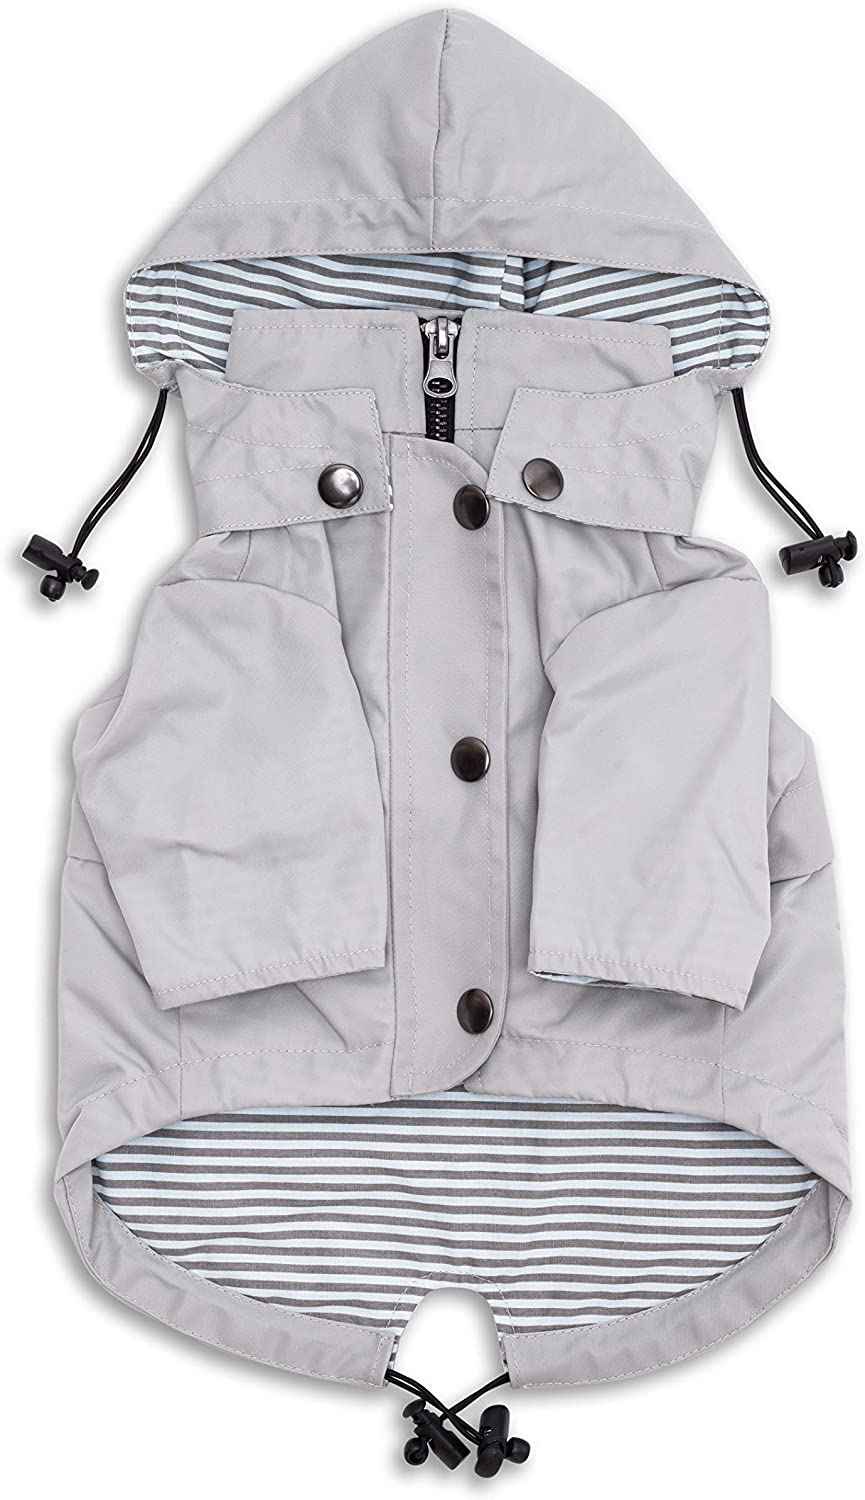 Ranking TOP6 Ellie Dog Wear Zip Topics on TV Up Light Raincoat Gray Pockets Wate with